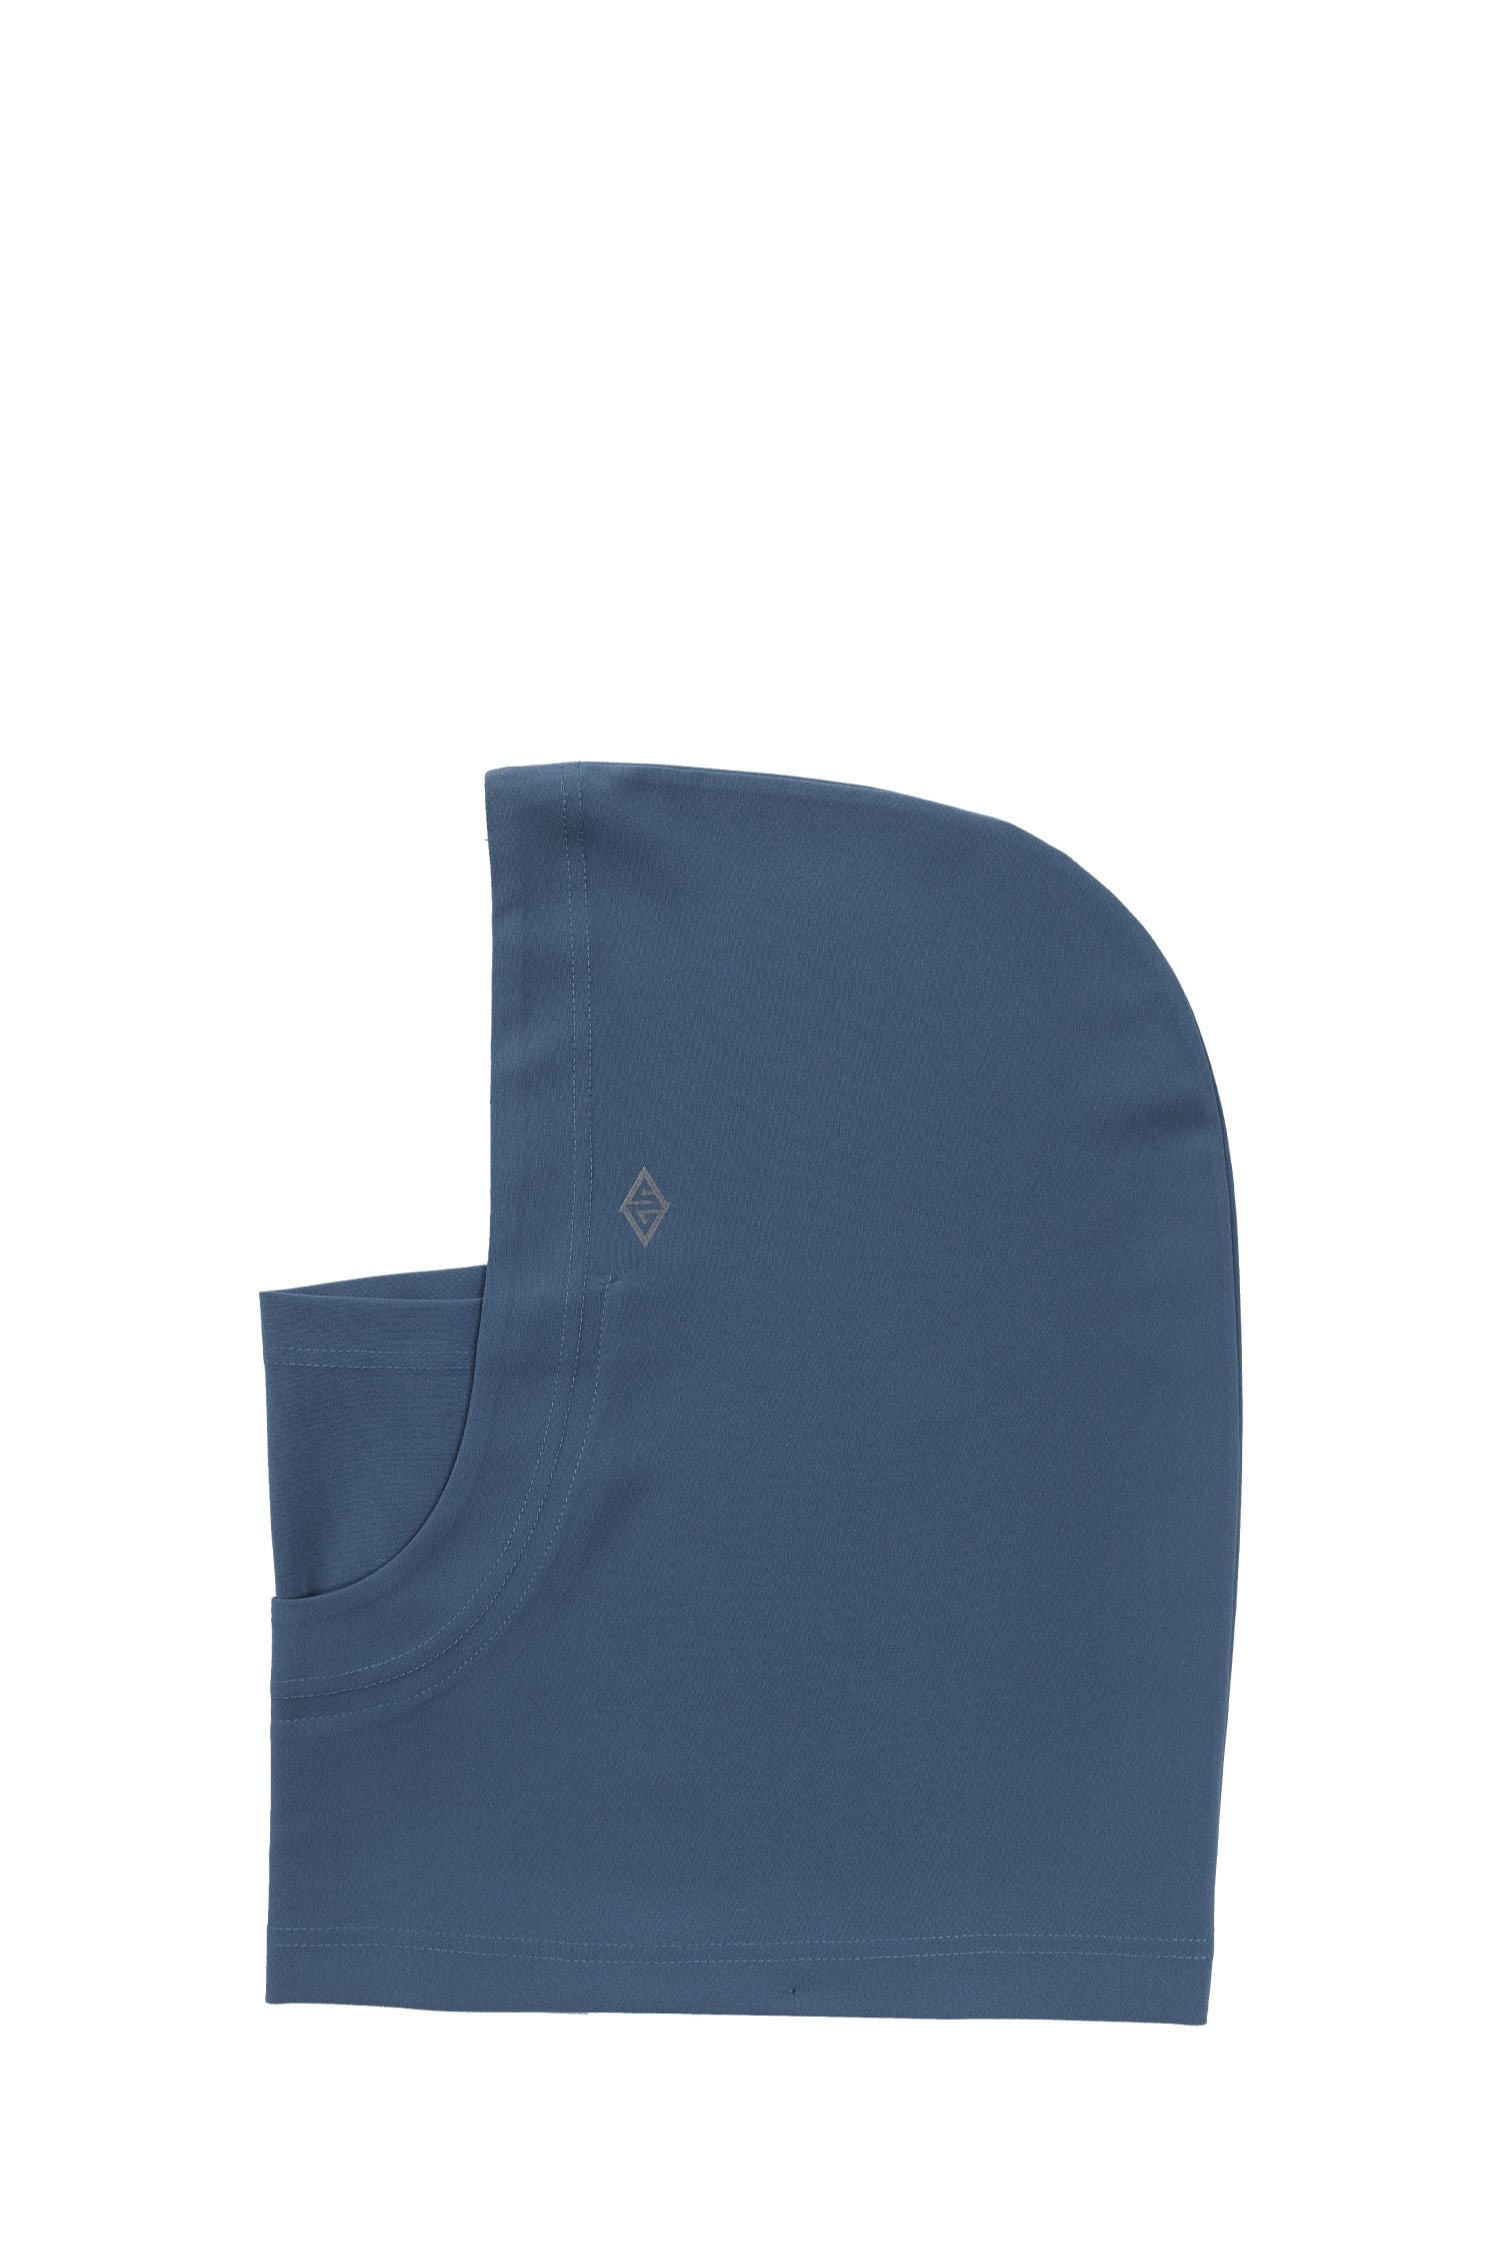 EASY HOODSKIN NAVY